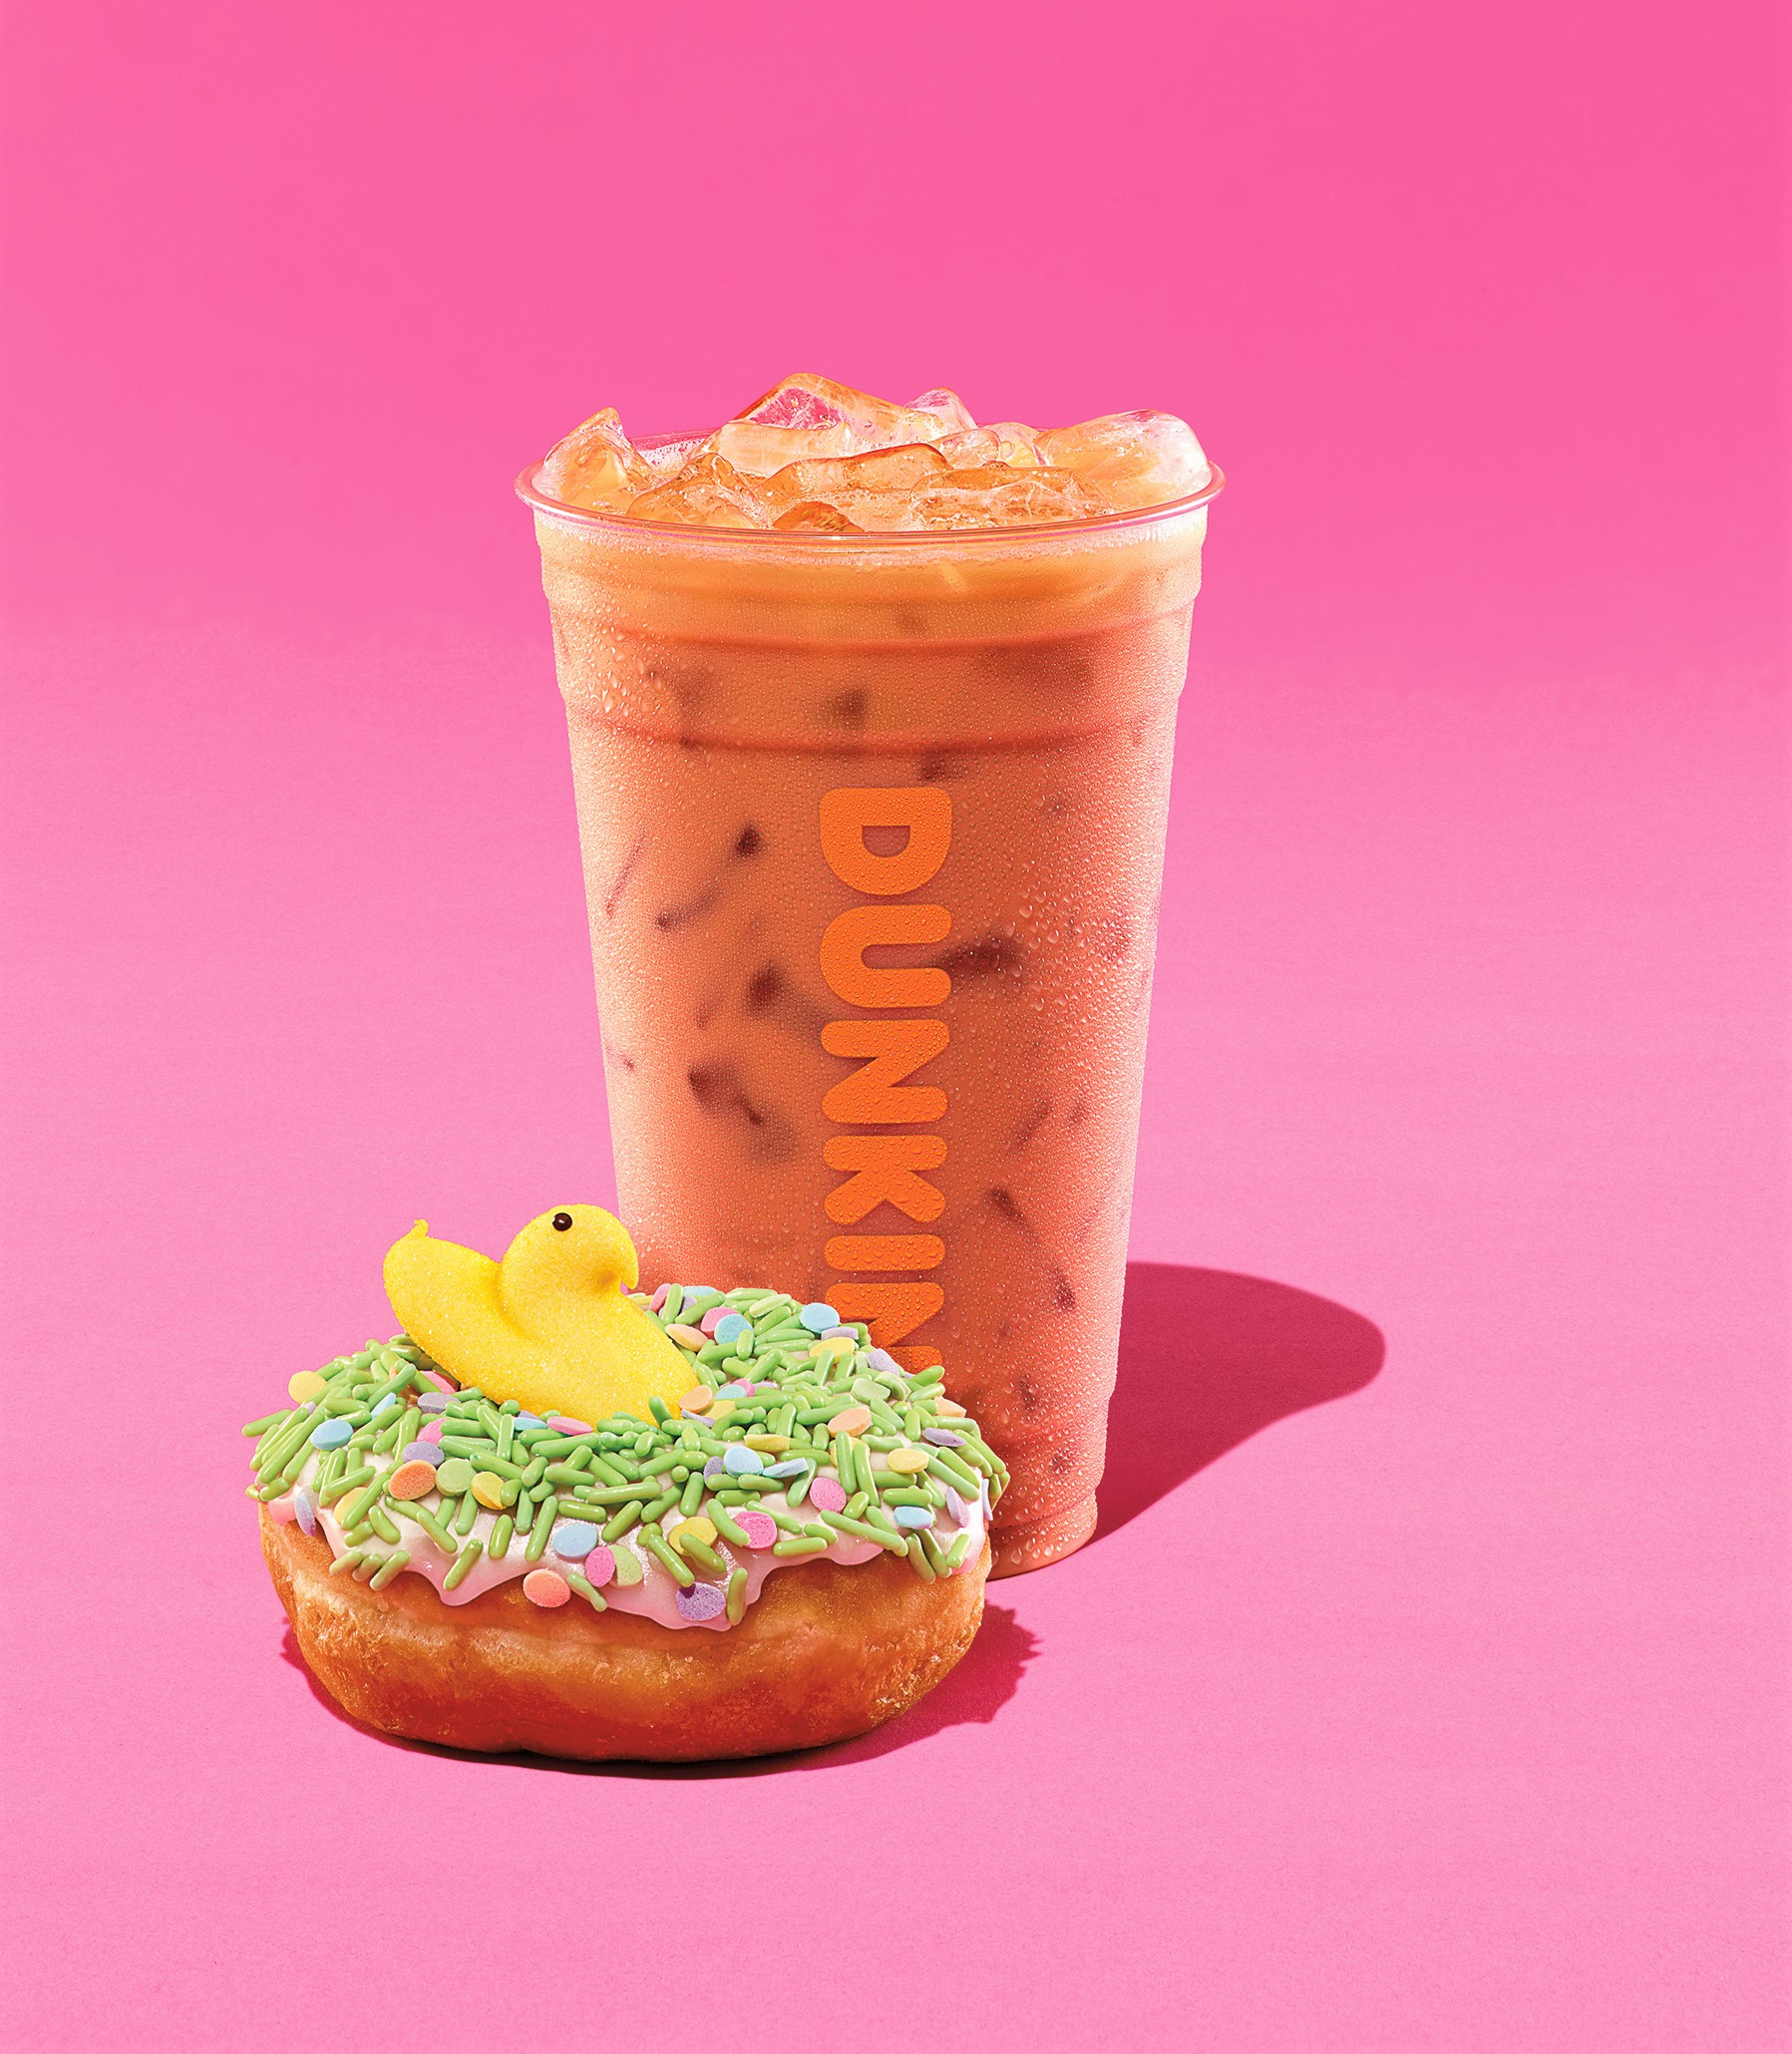 Dunkin Donuts Peeps Special Doughnuts and Coffee